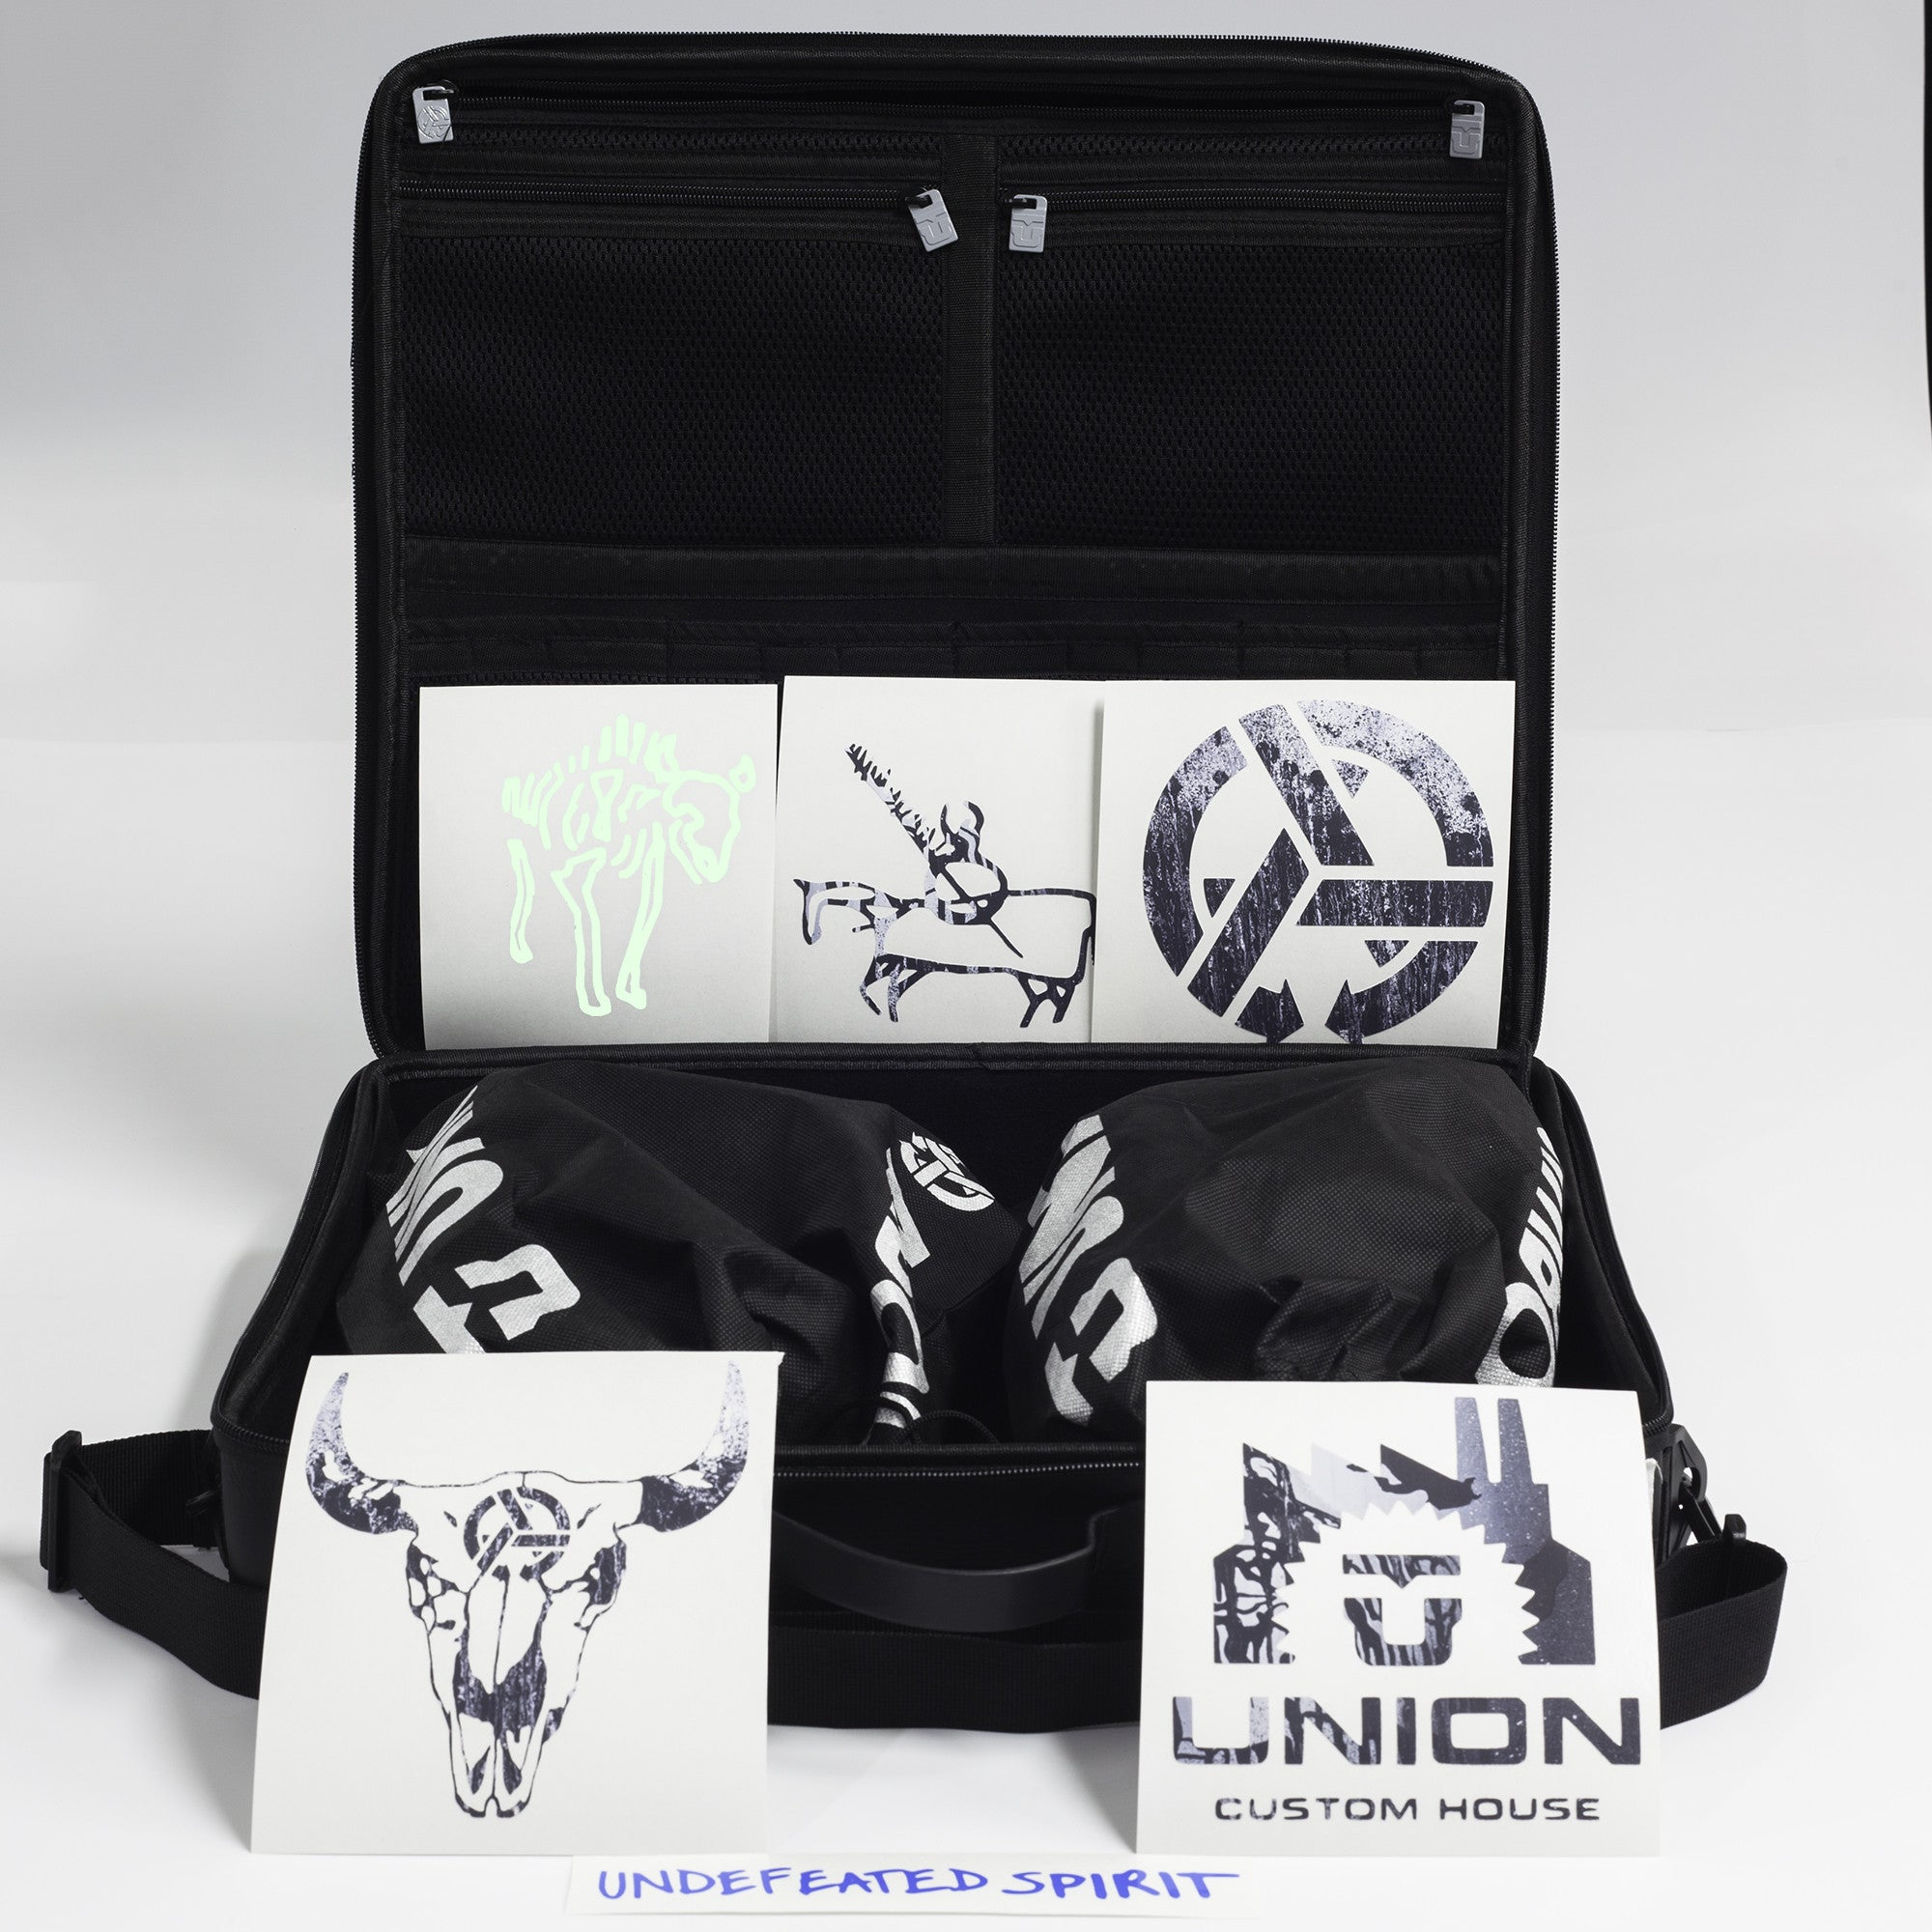 Asymbol X Union Binding 2014/15: Undefeated Spirit By